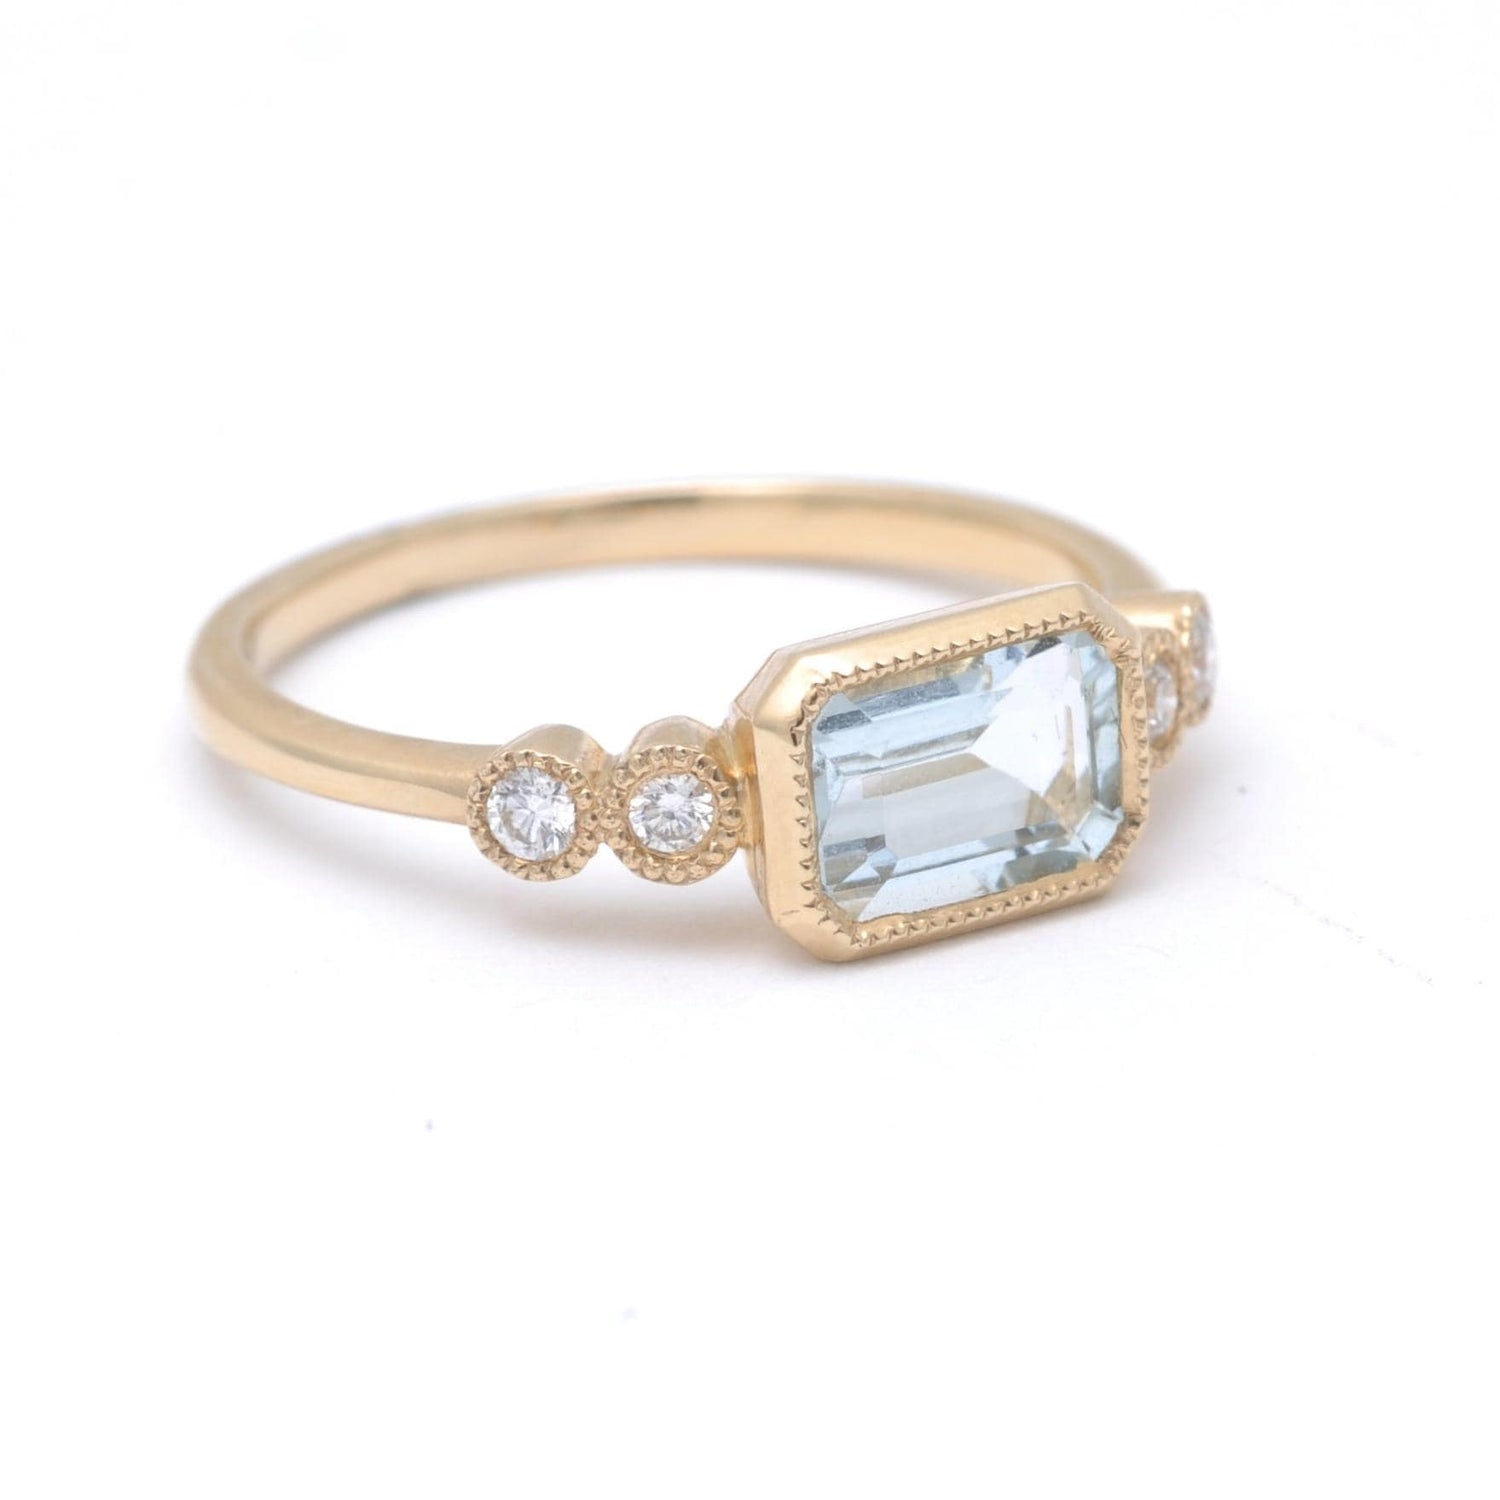 Aquamarine Diamond 14k Gold Ring